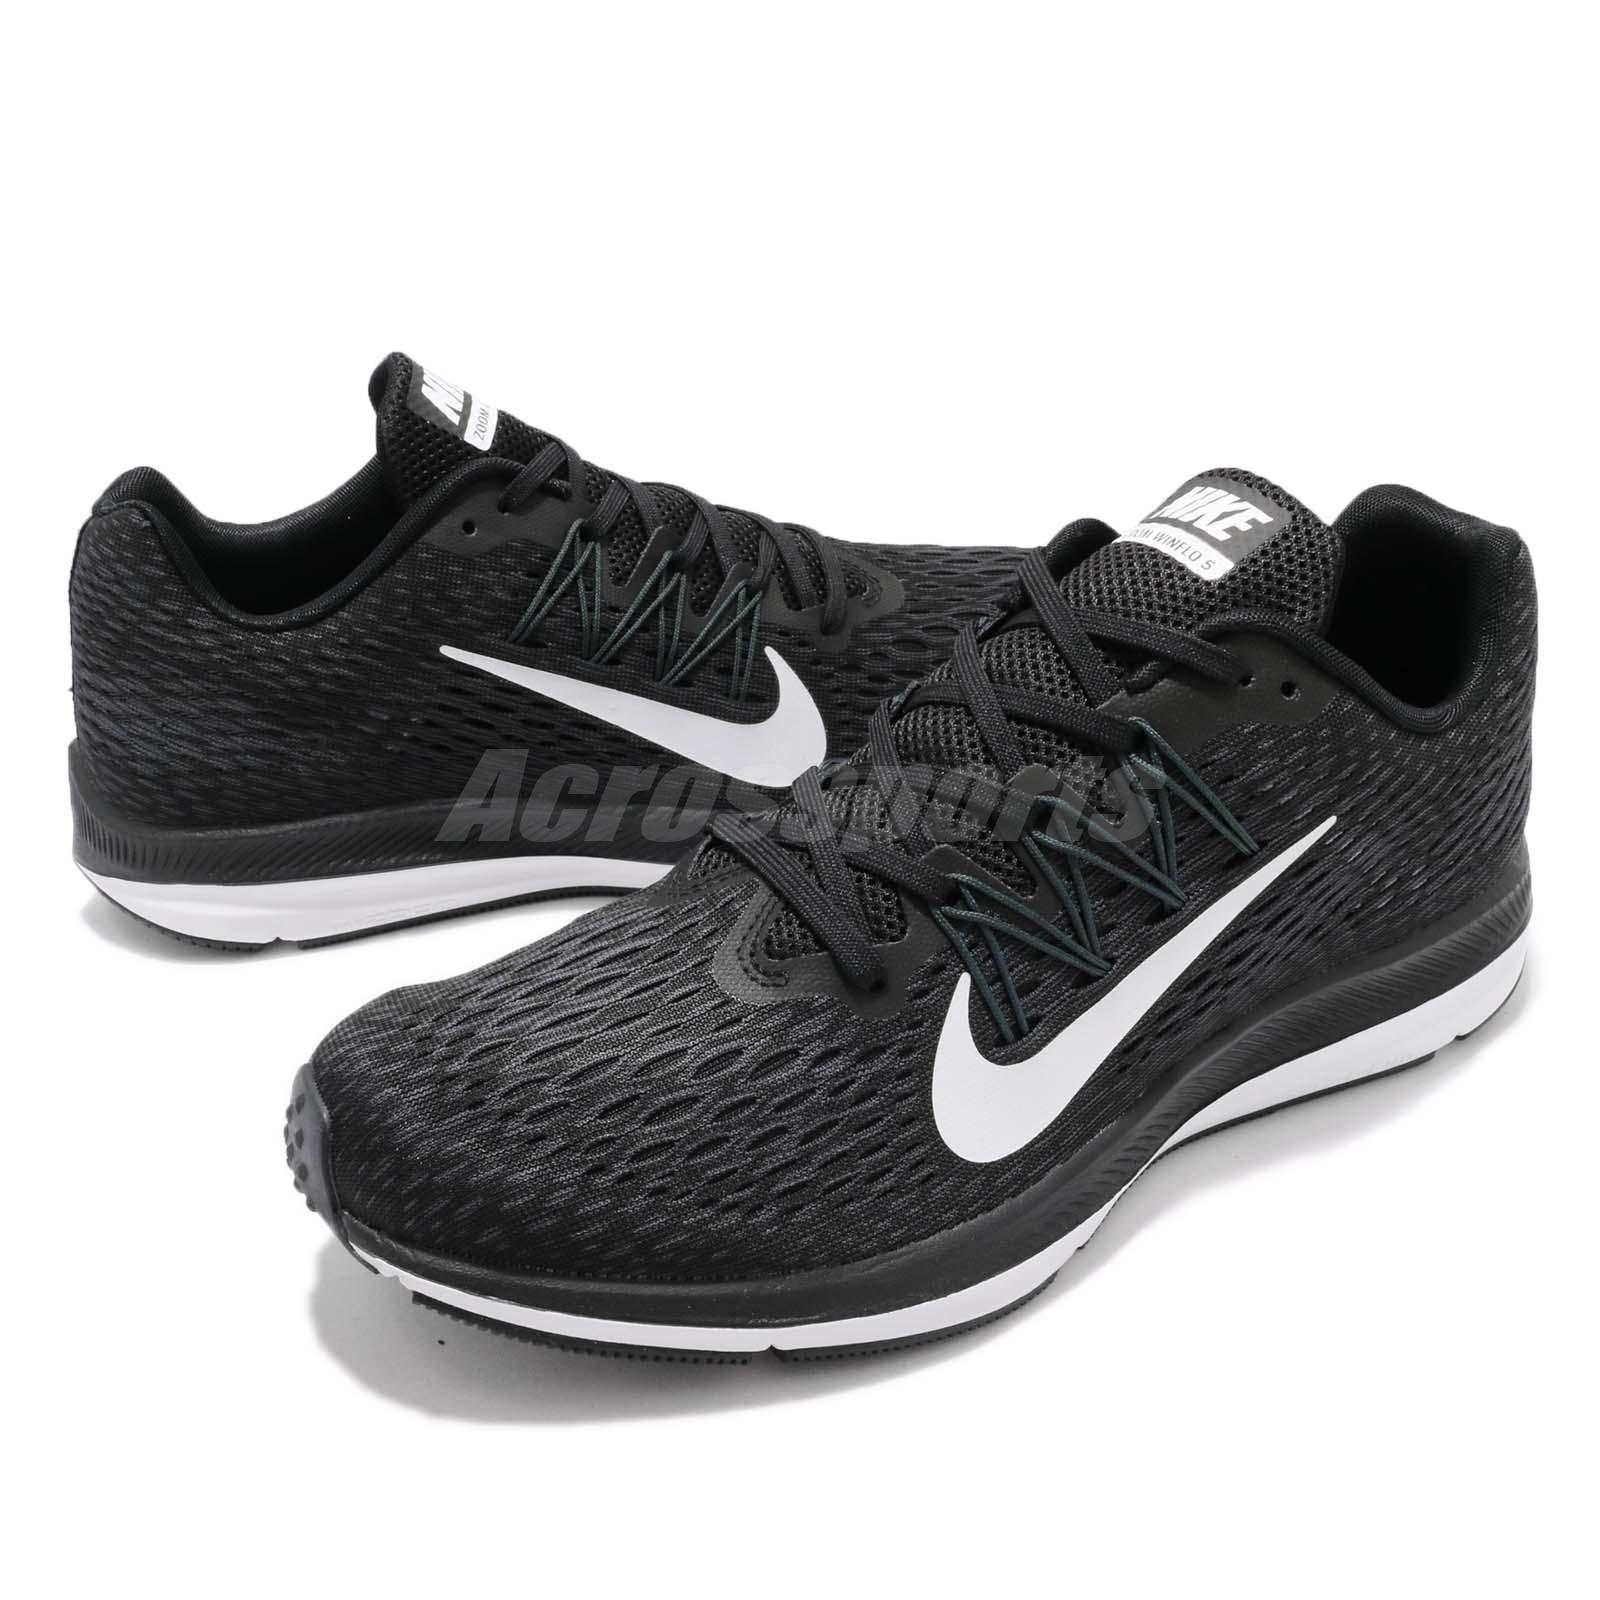 a62ff023f1819 Details about Nike Zoom Winflo 5 V Black White Men Running Shoes Sneakers  AA7406-001